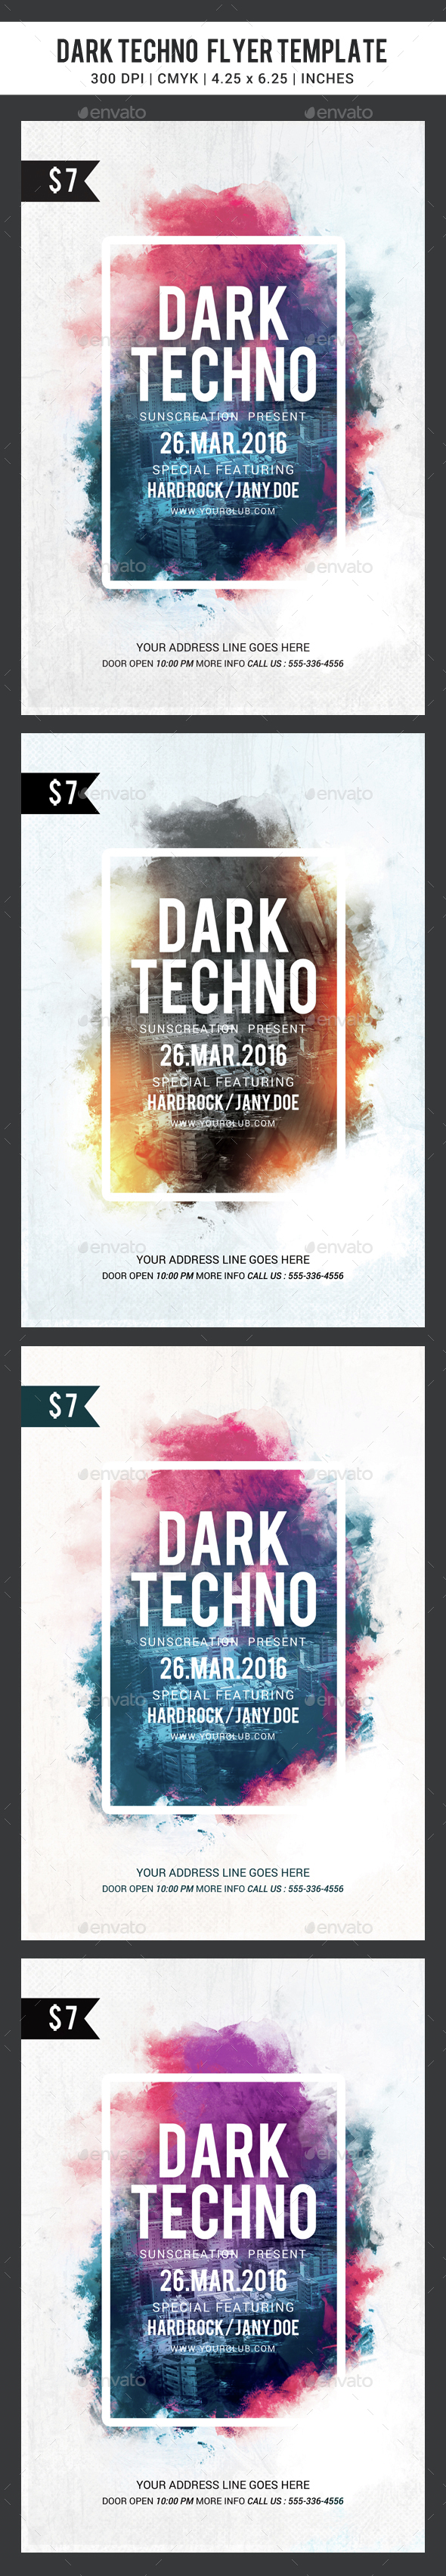 Dark Techno party flyer template - Clubs & Parties Events